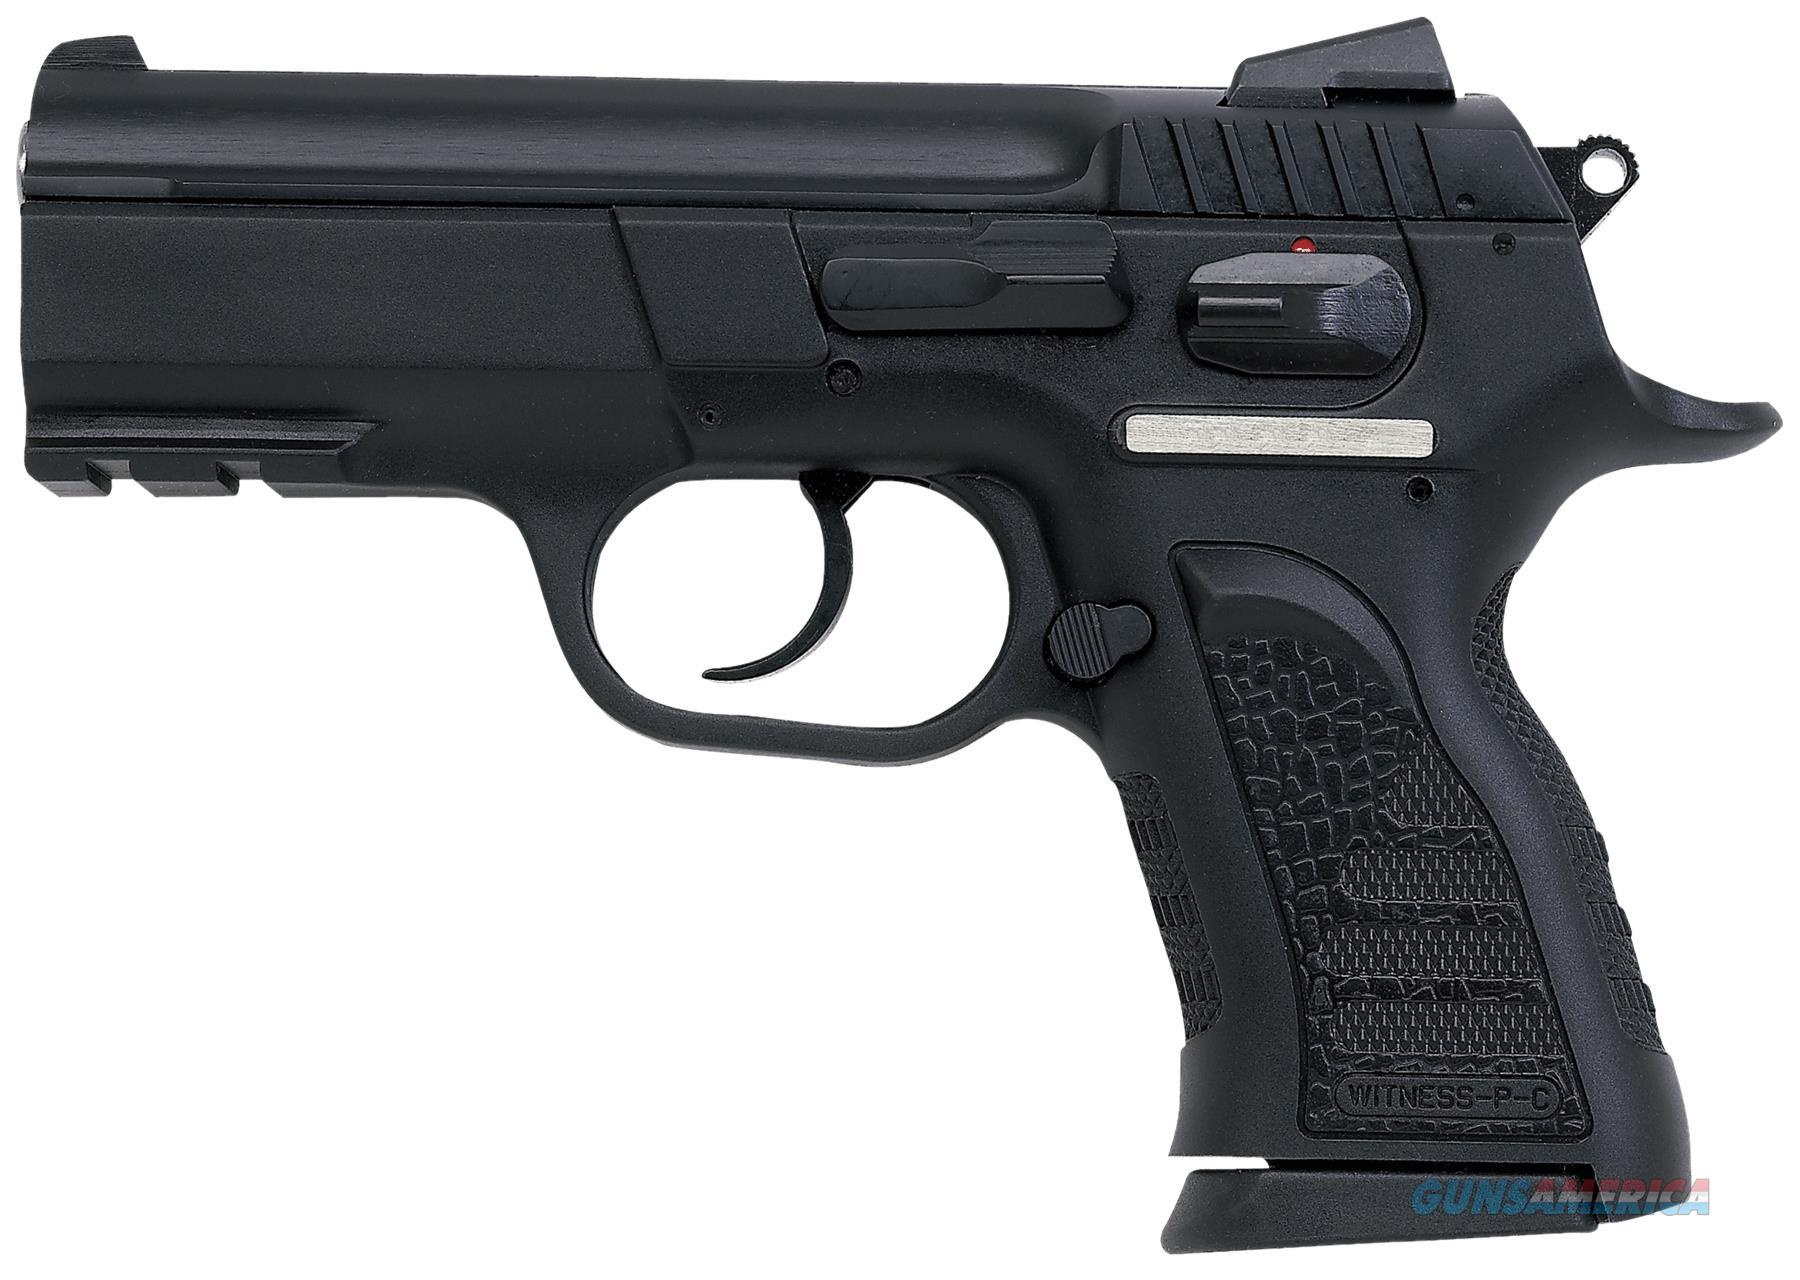 EAA TANFO WITNESS 9MM COMPACT POLYMER 12RD 999106  Guns > Pistols > EAA Pistols